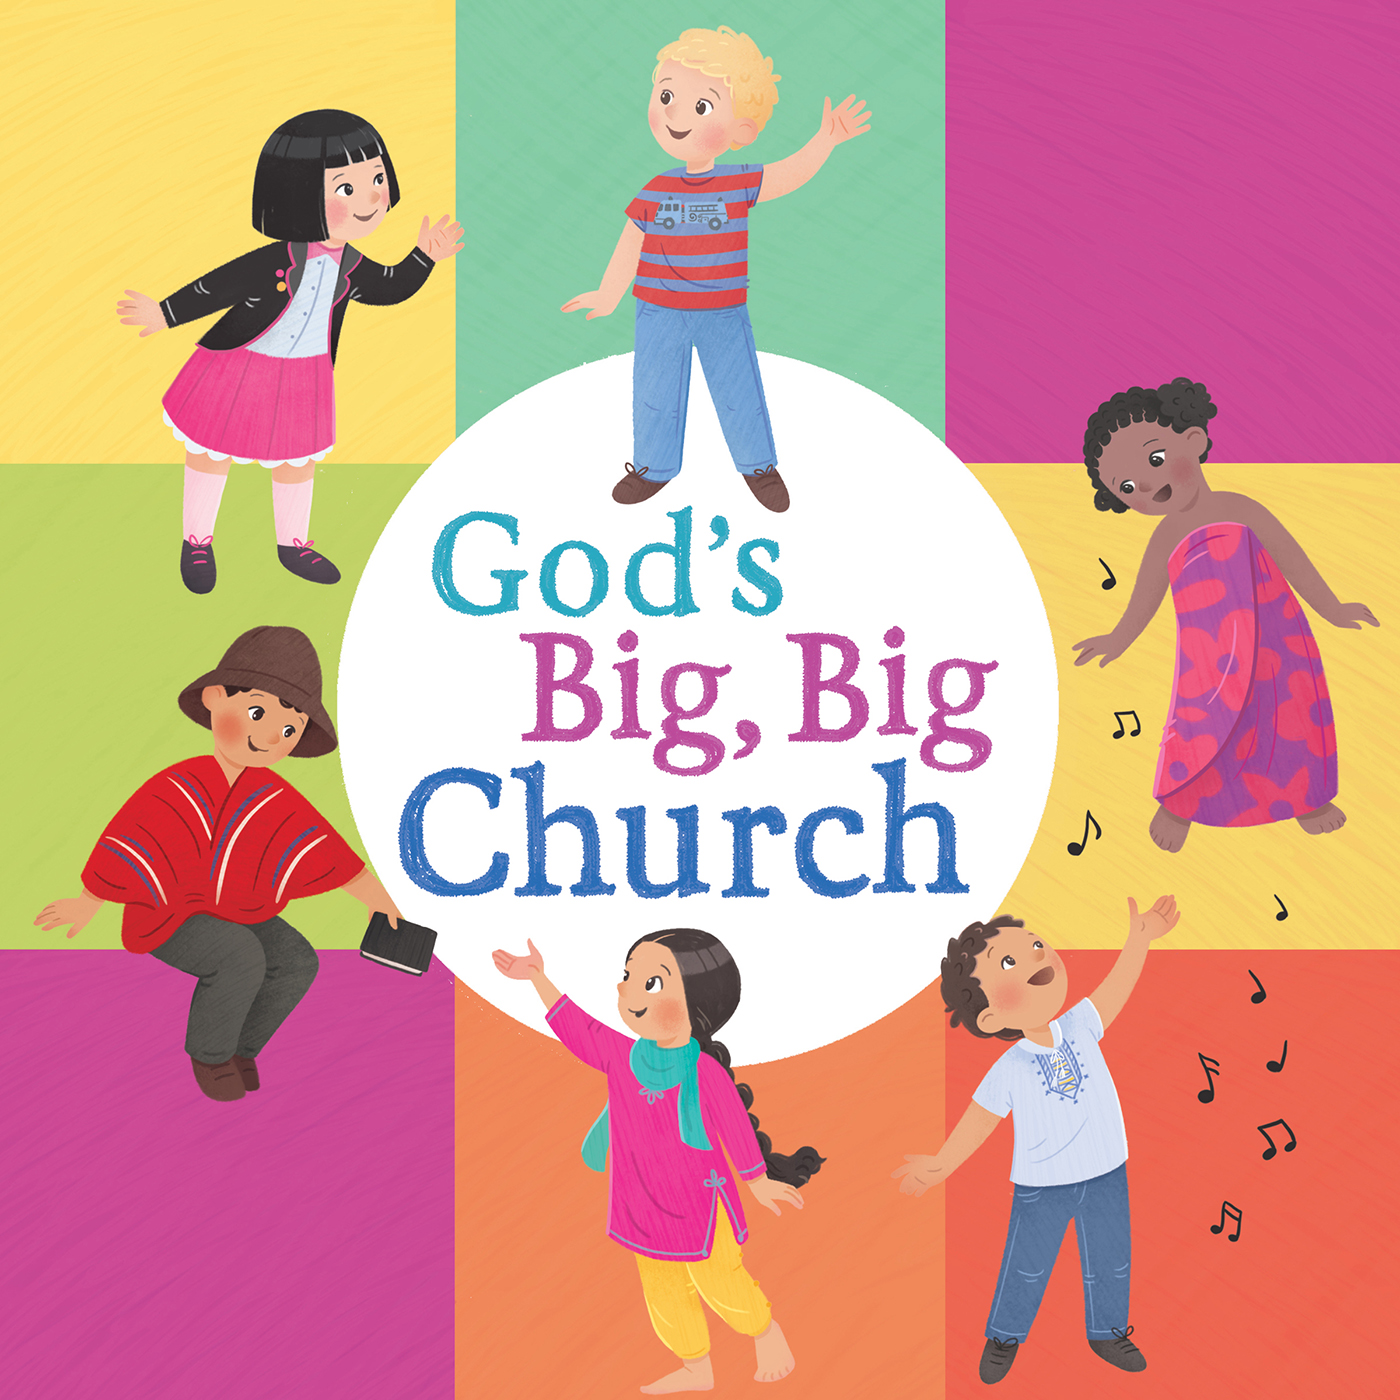 God's Big, Big Church